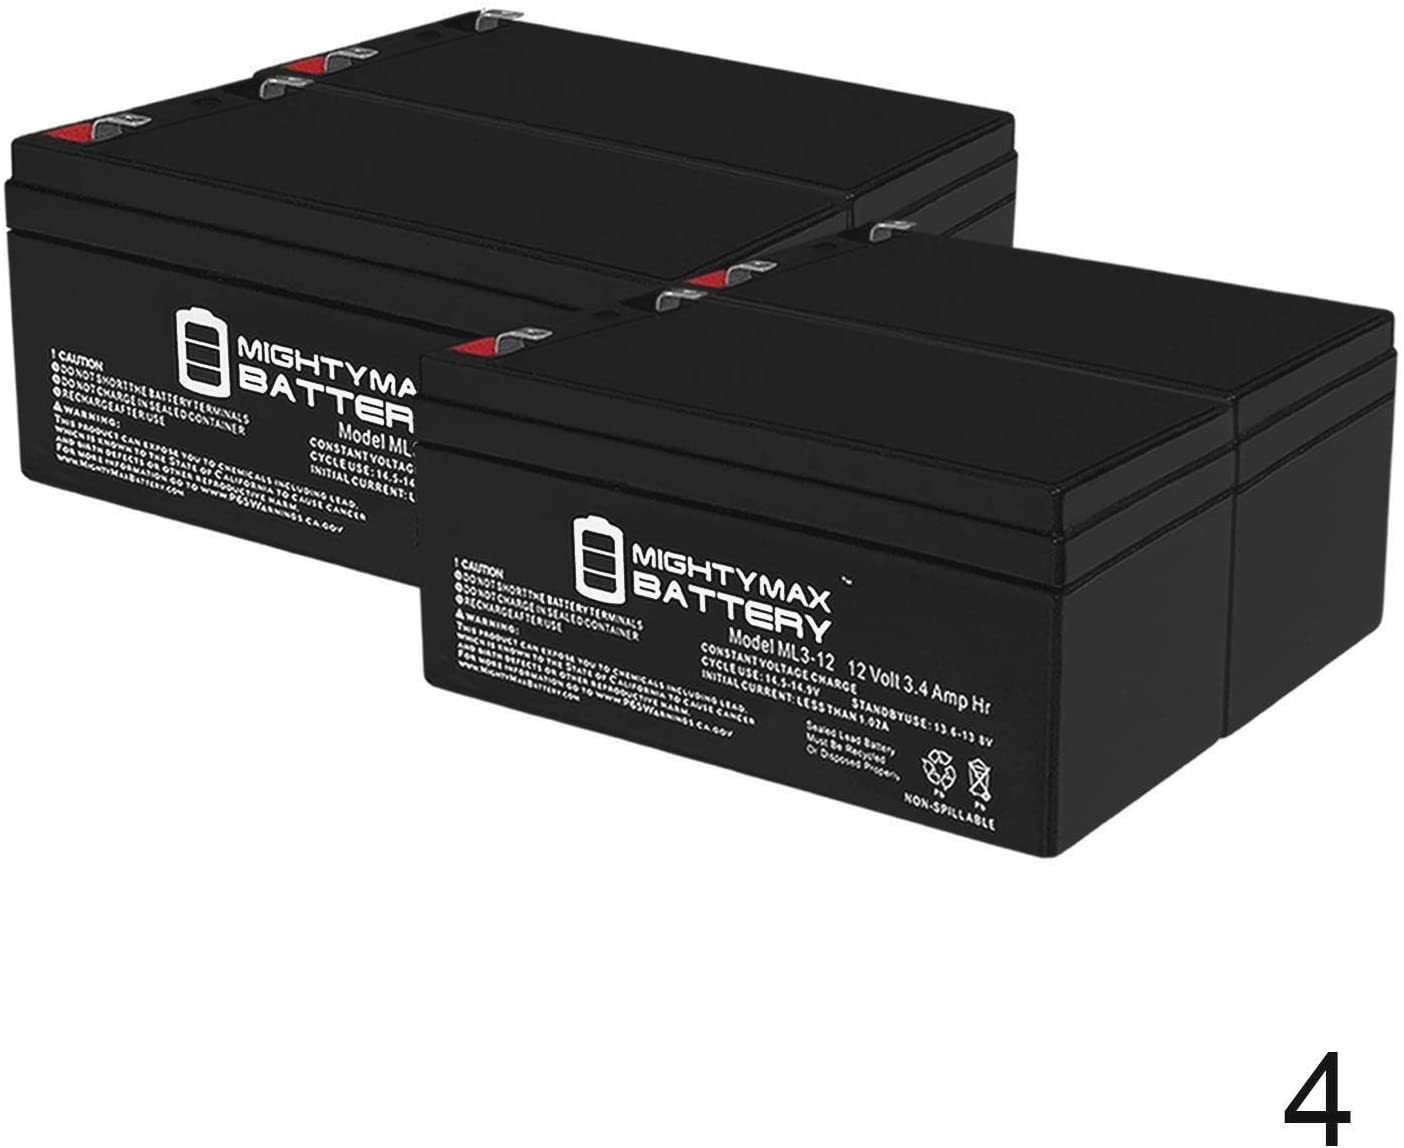 Mighty Max Battery ML3-12 Battery for WP3-12 Backup 12 Volt 3.4AH - 4 Pack Brand Product